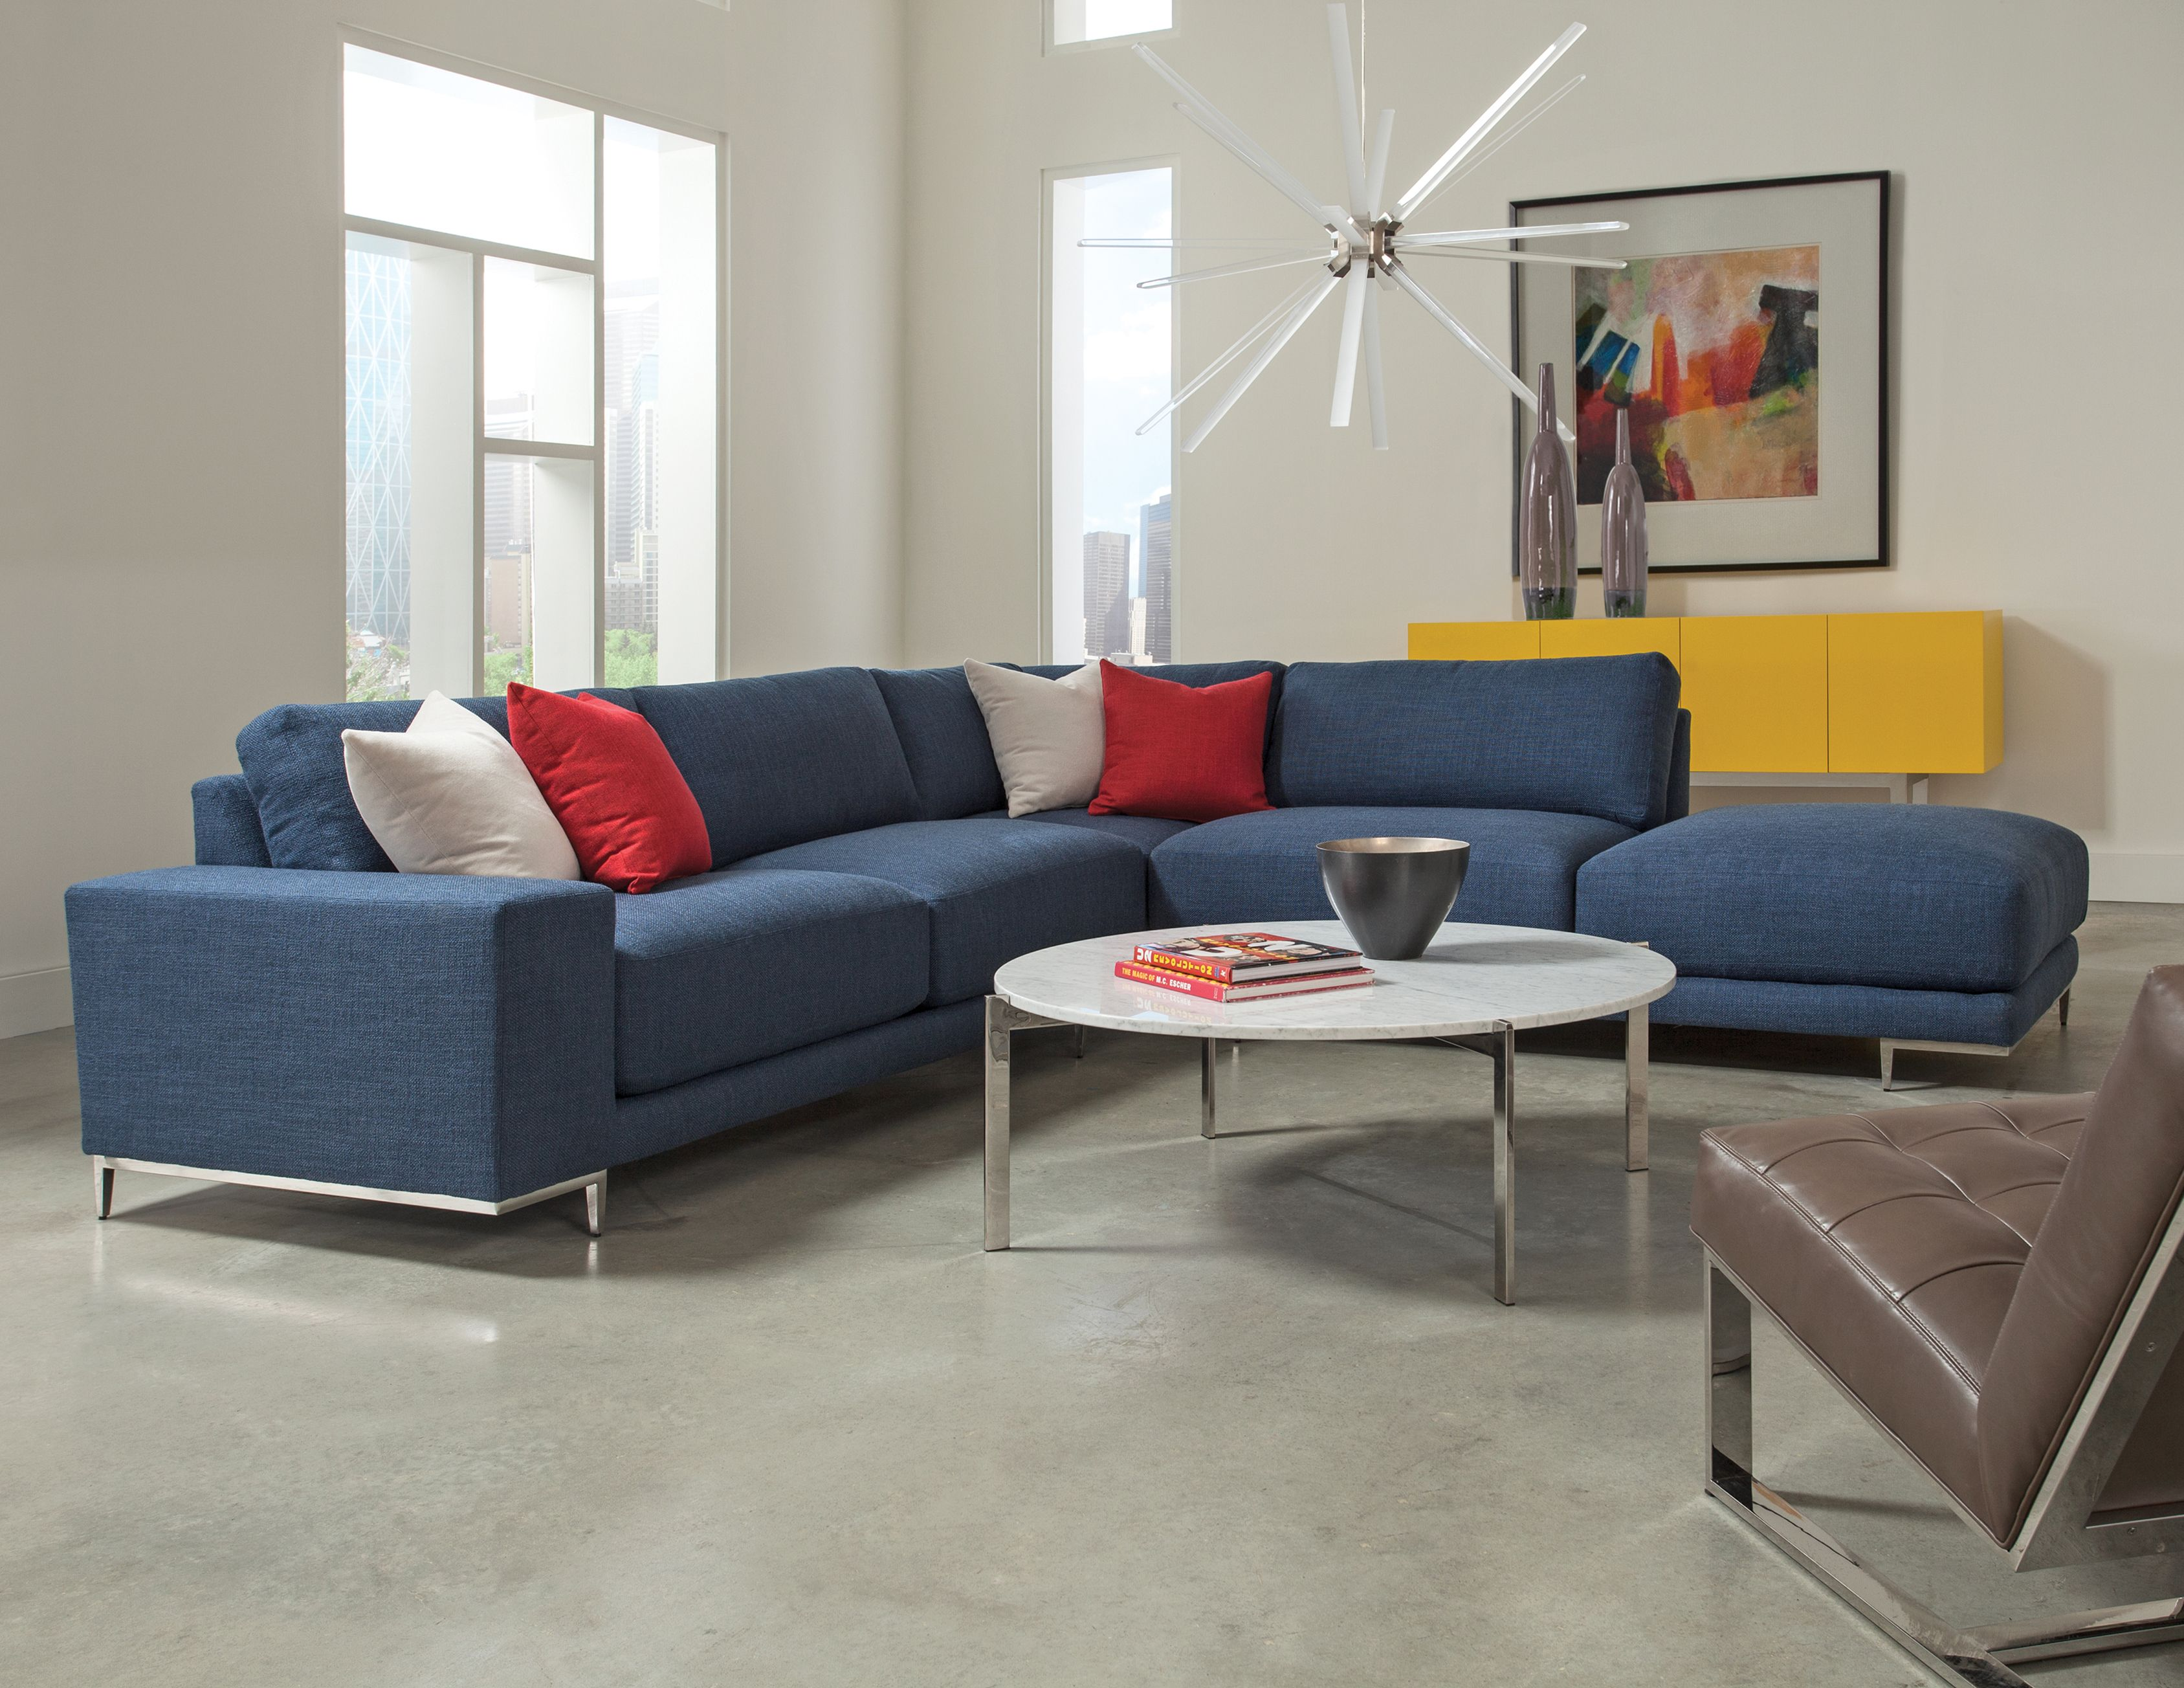 Hangover Modular Sectional Sofa With Drop In Cocktail Table And Milo Baughman Ez Rider Armless Lo Modular Sectional Sofa Custom Modern Furniture Sectional Sofa